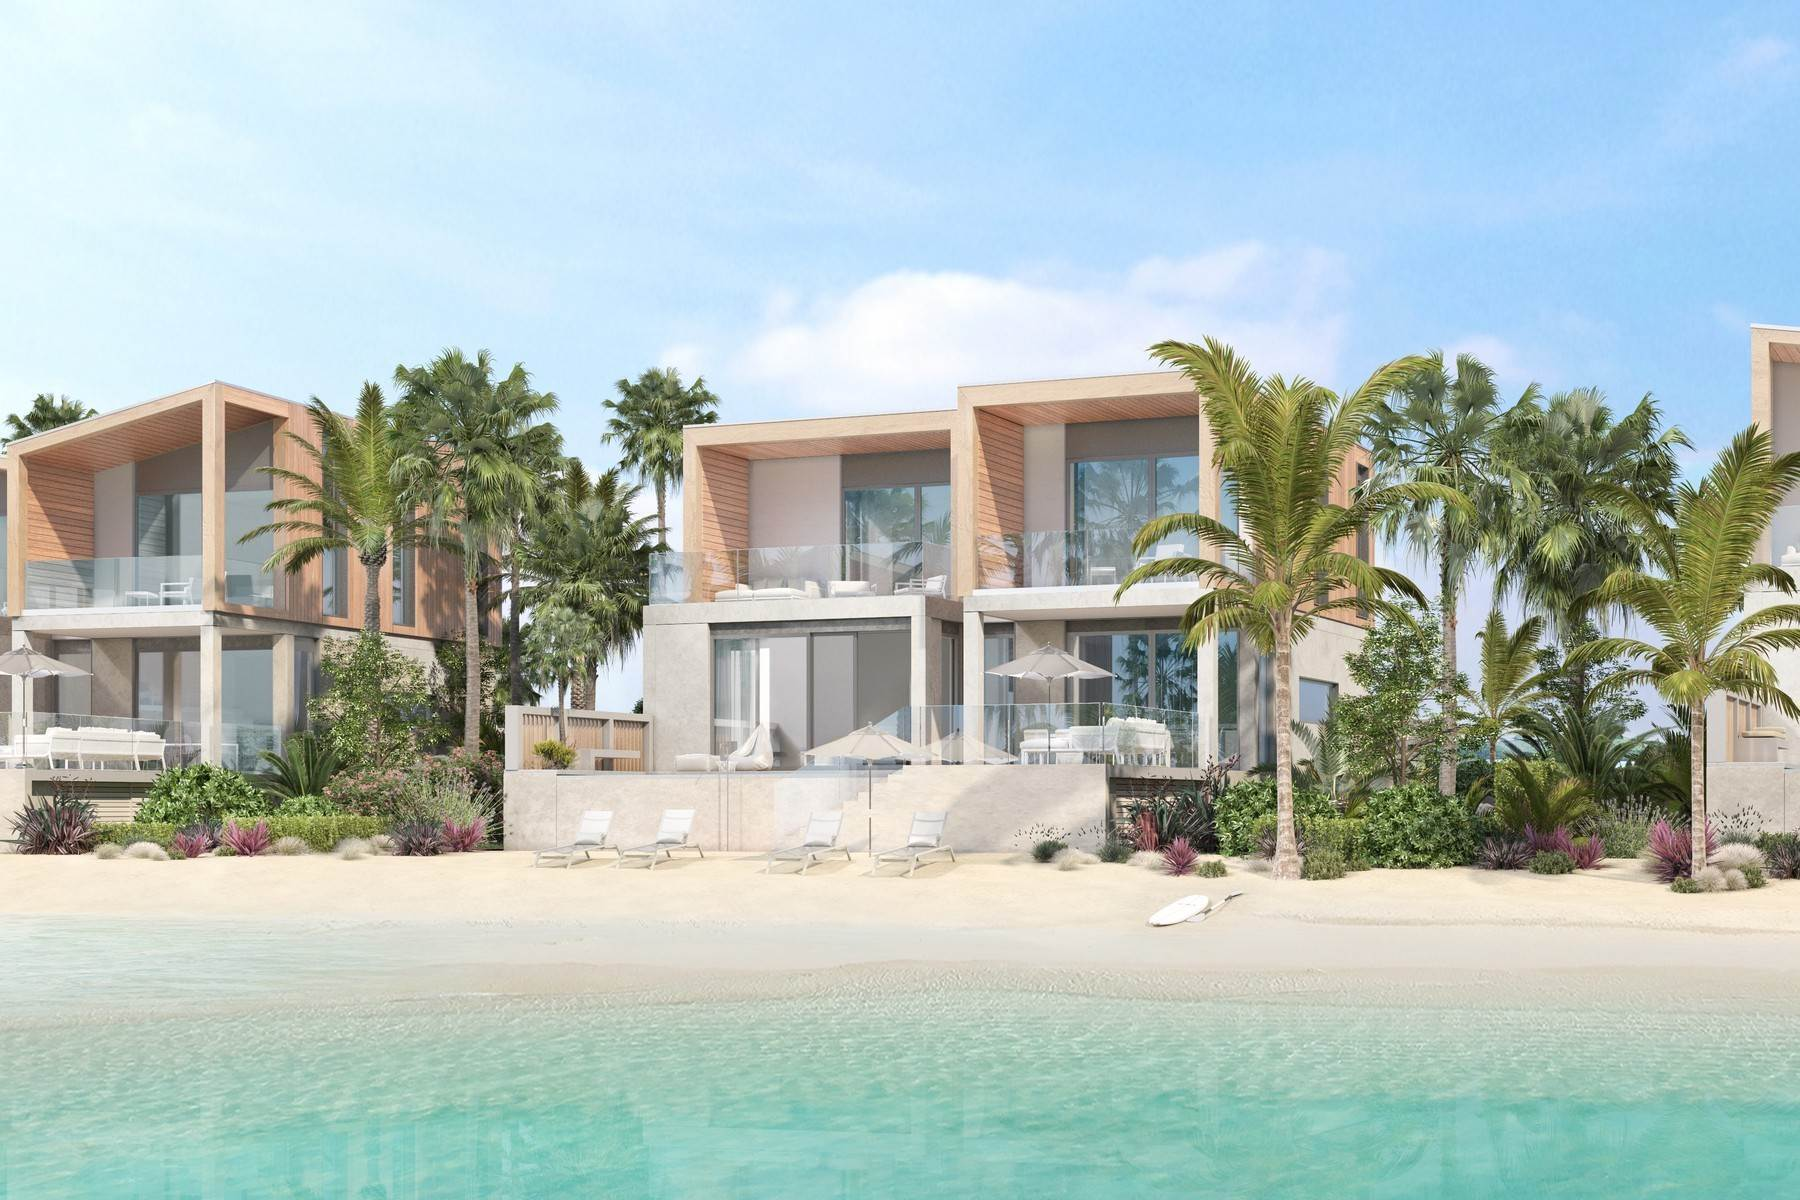 9. Single Family Homes for Sale at SOUTH BANK - THE LAGOON II - LAGOON VILLA 18 South Bank, Long Bay, Providenciales Turks And Caicos Islands